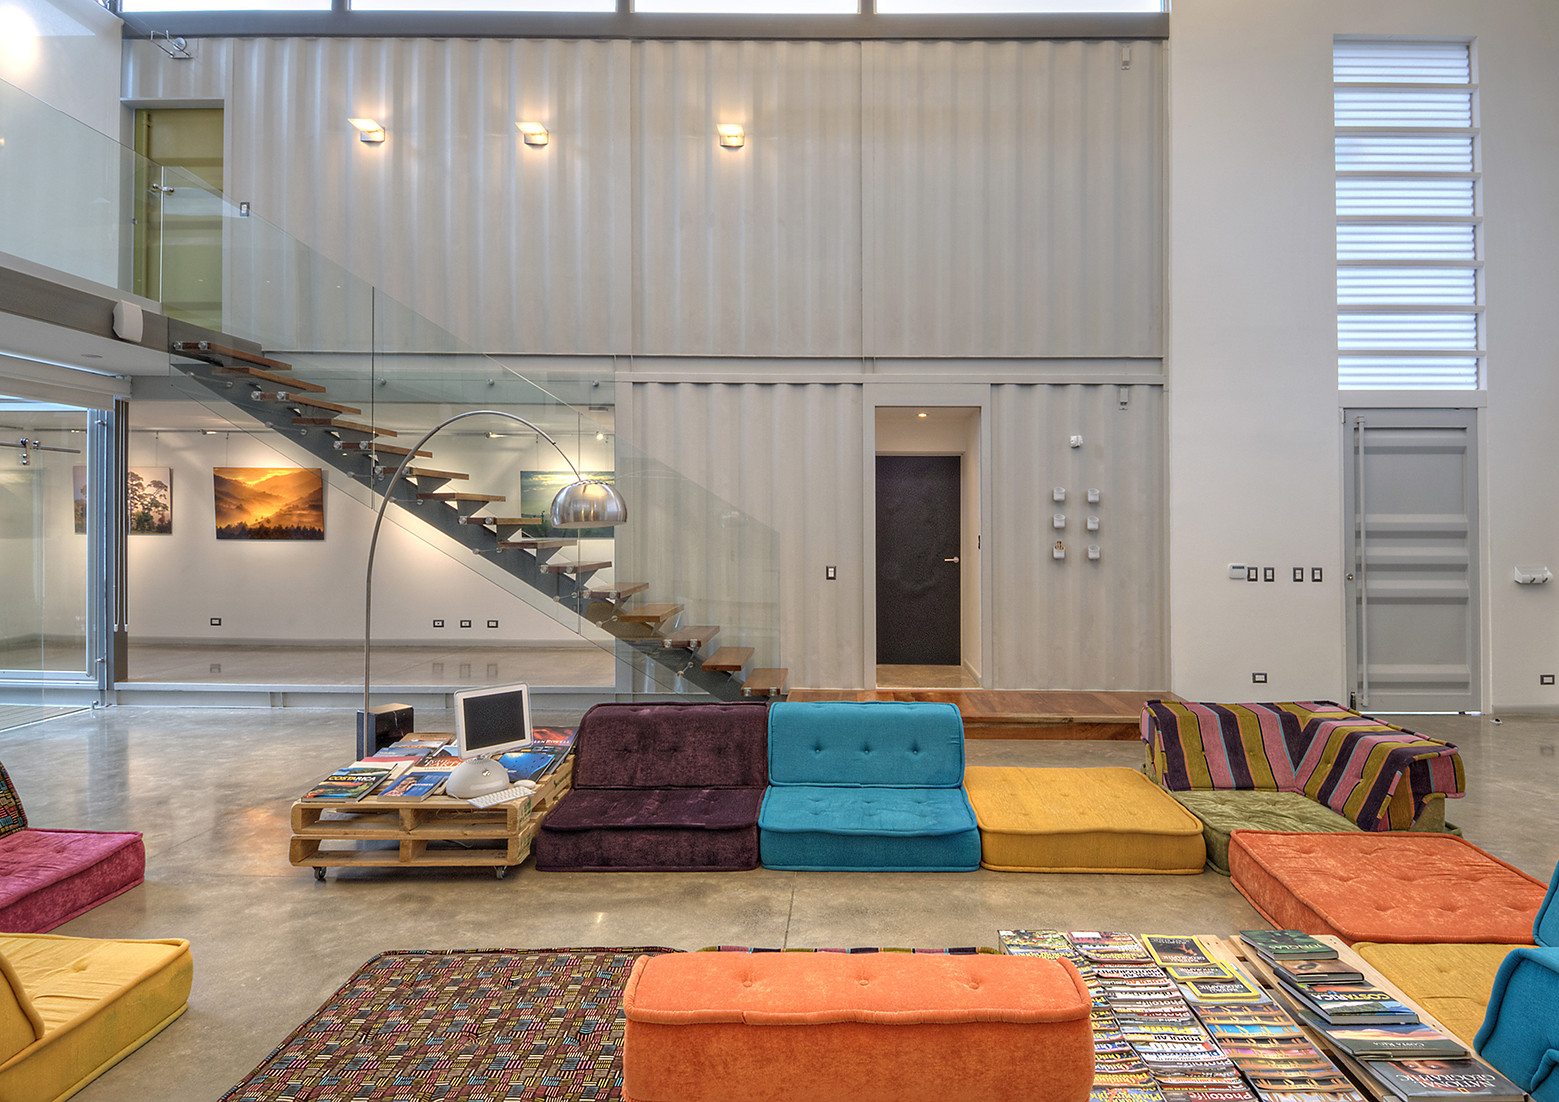 Modern Shipping Container Home coldwell banker global luxury blog – luxury home & style